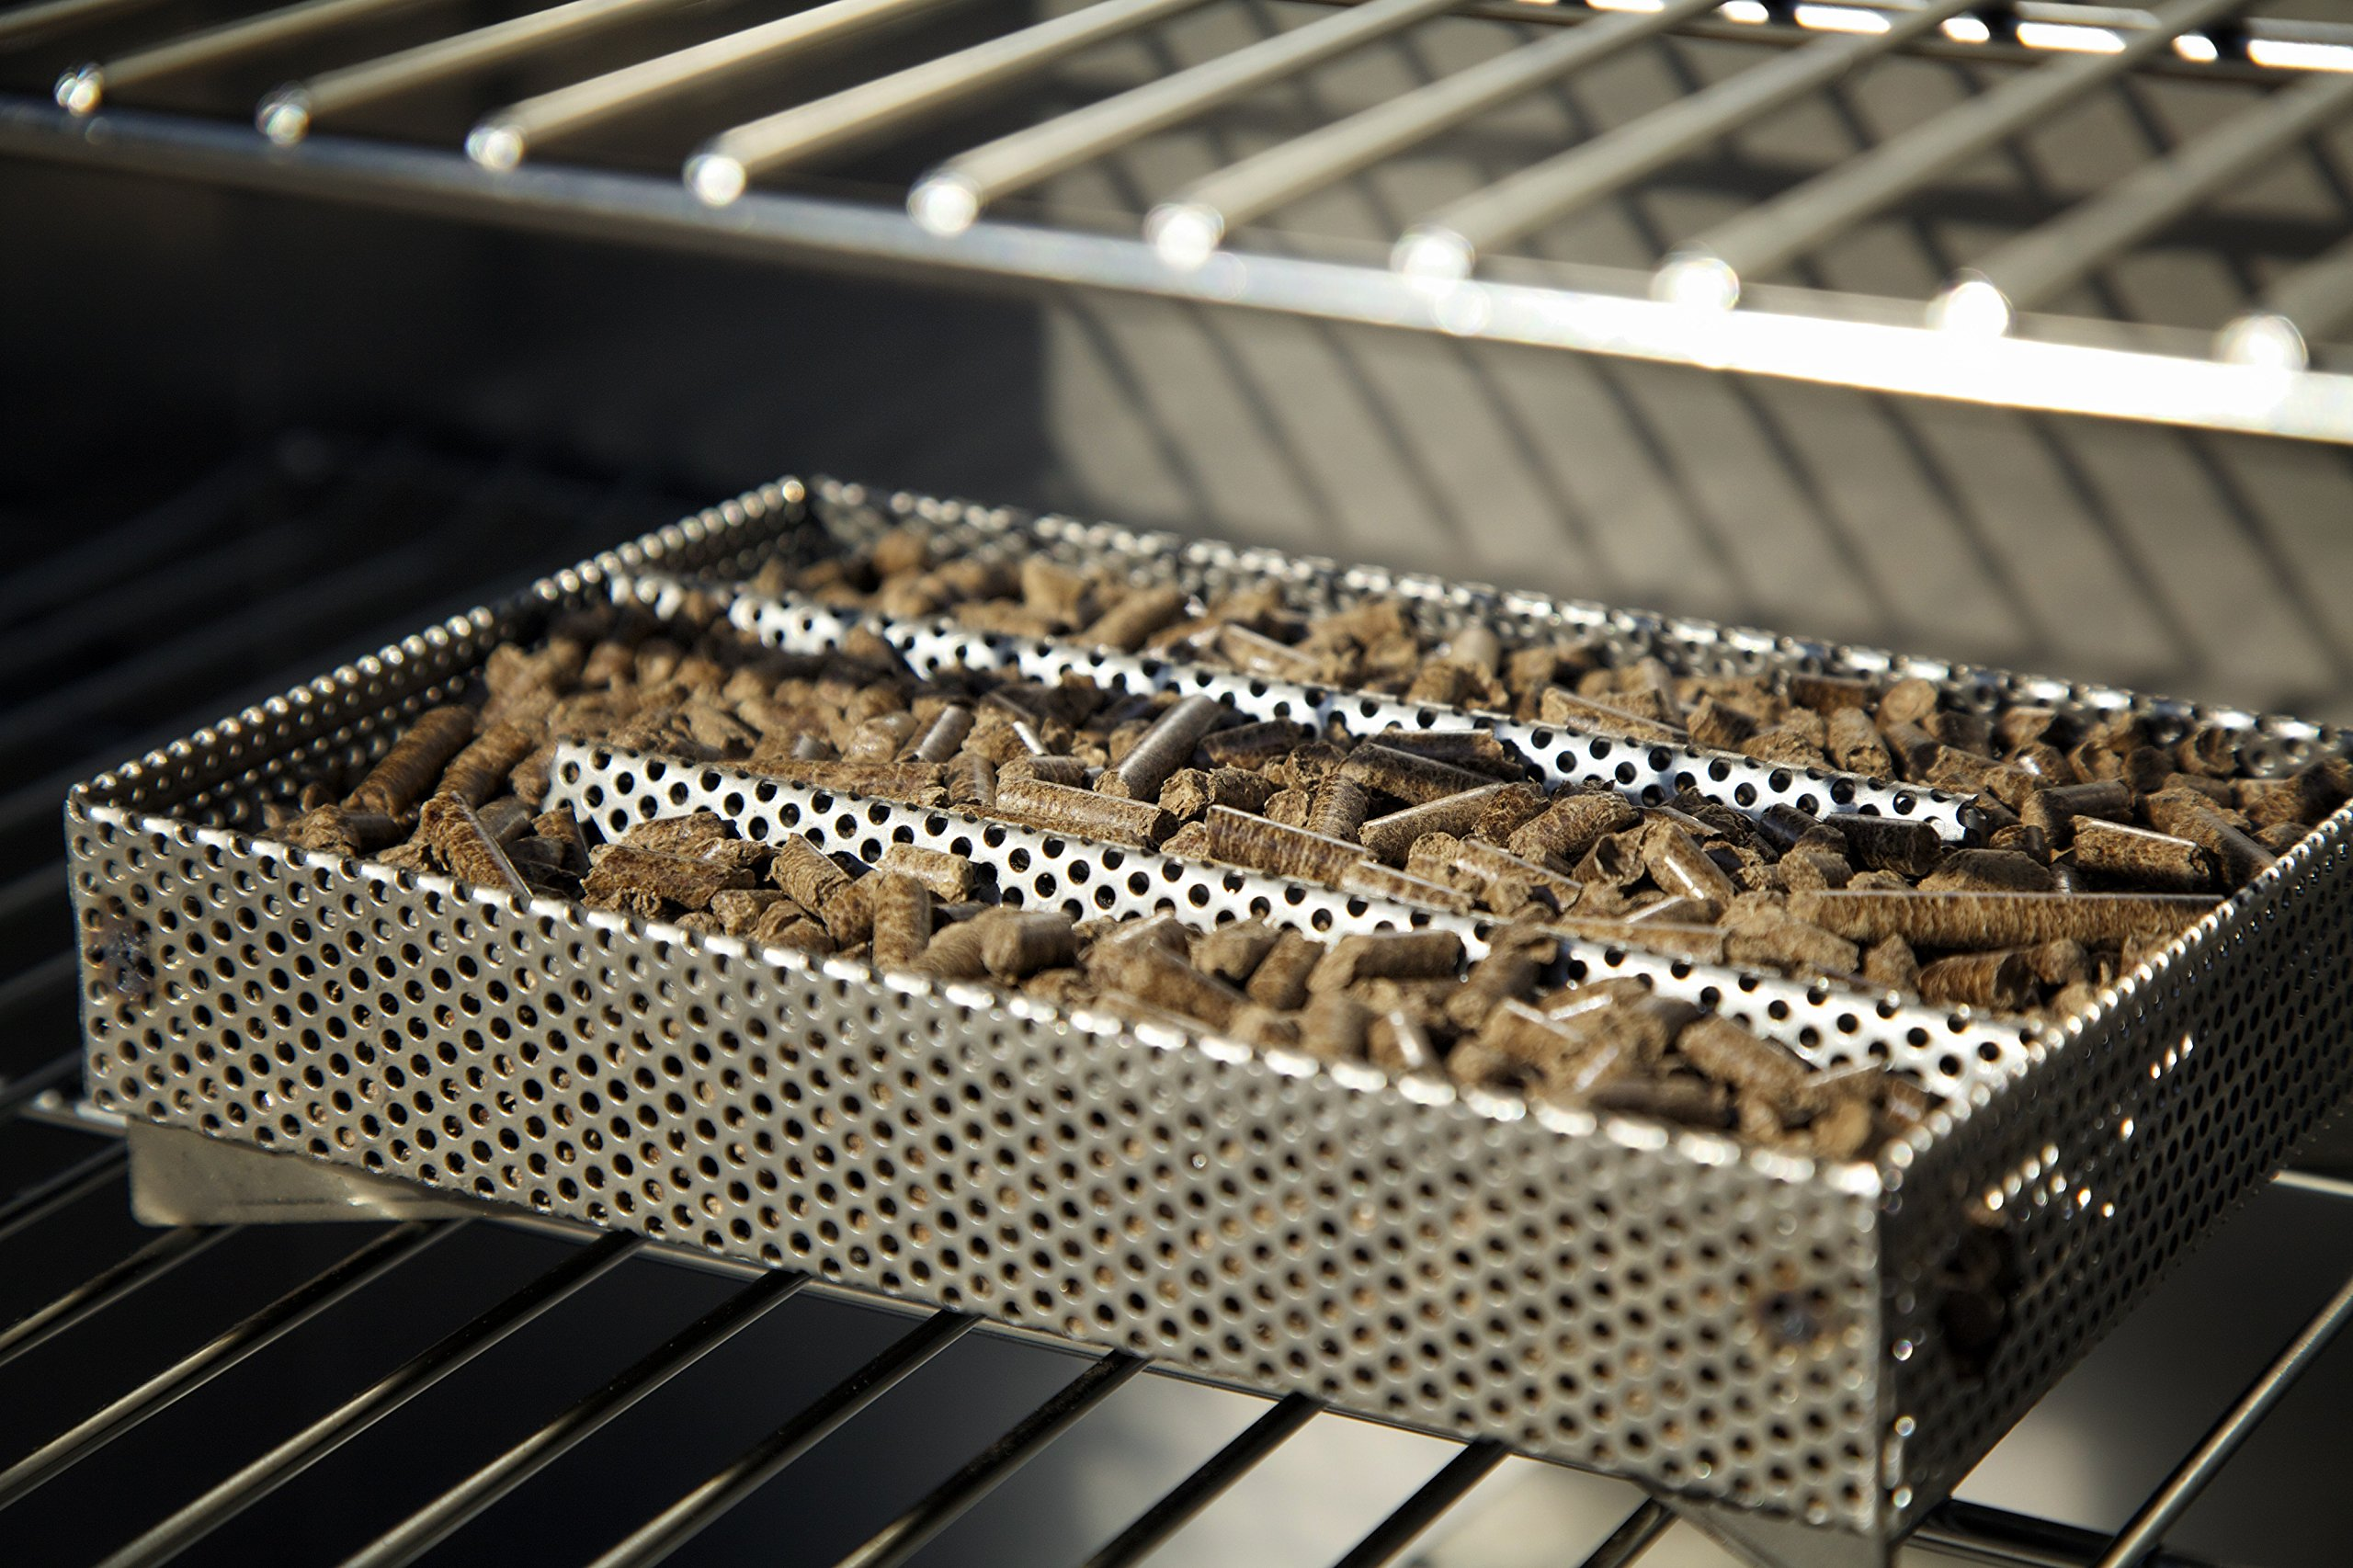 A-MAZE-N Maze 5'' L x 8'' W Pellet Smoker Prefilled With 100% Wood Hickory BBQ Pellets by A-MAZE-N (Image #3)